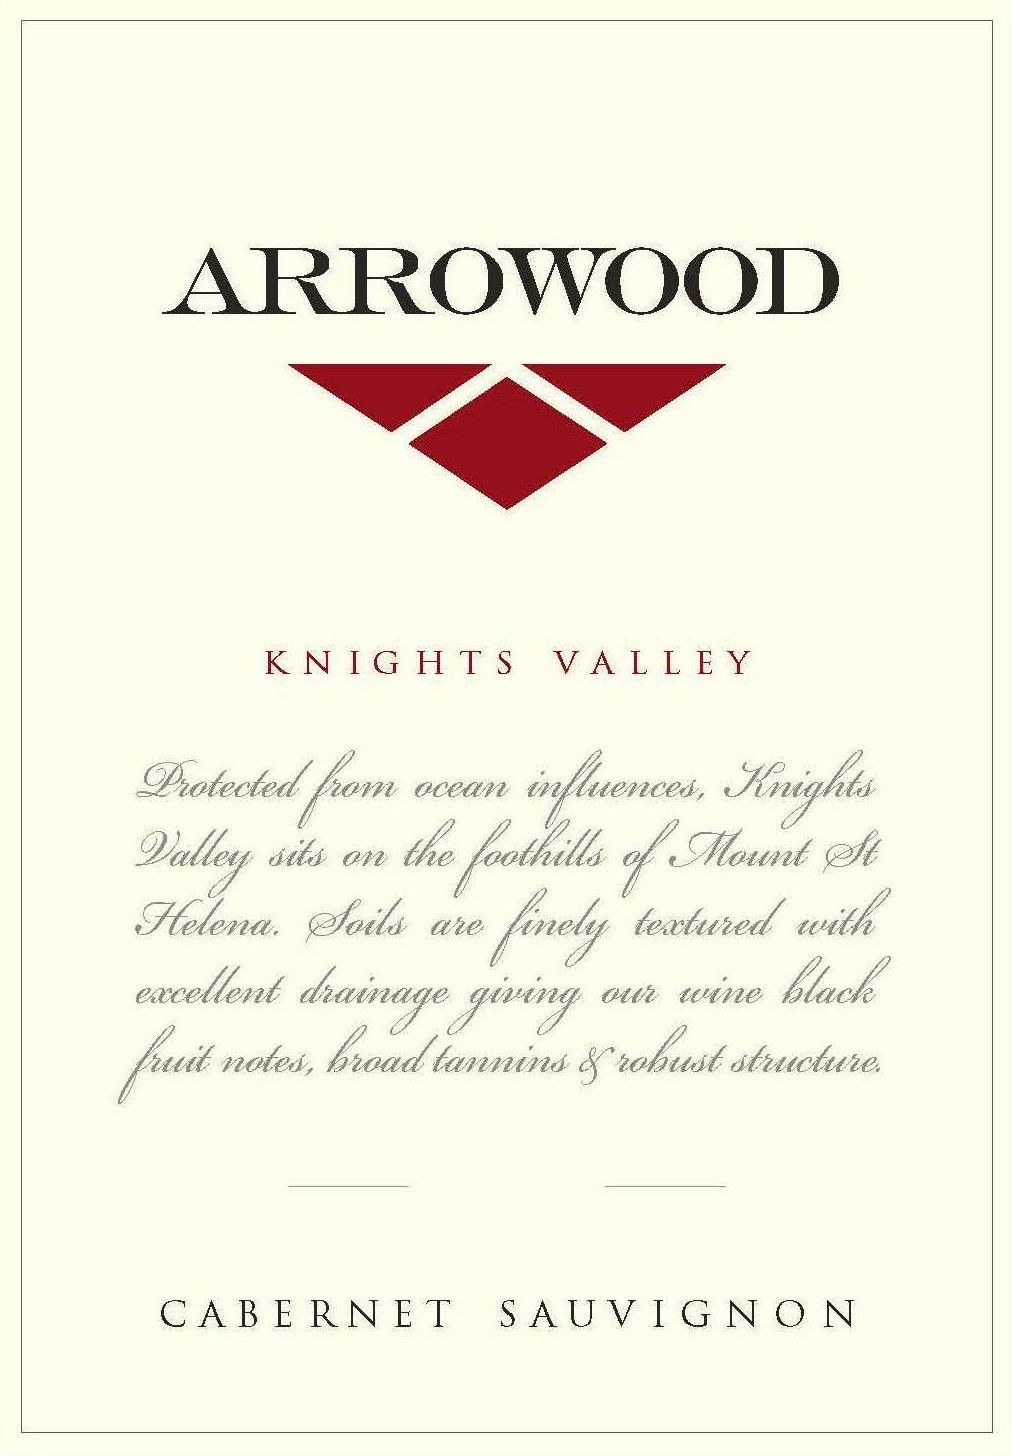 Arrowood Knights Valley Cabernet Sauvignon 2015 Front Label